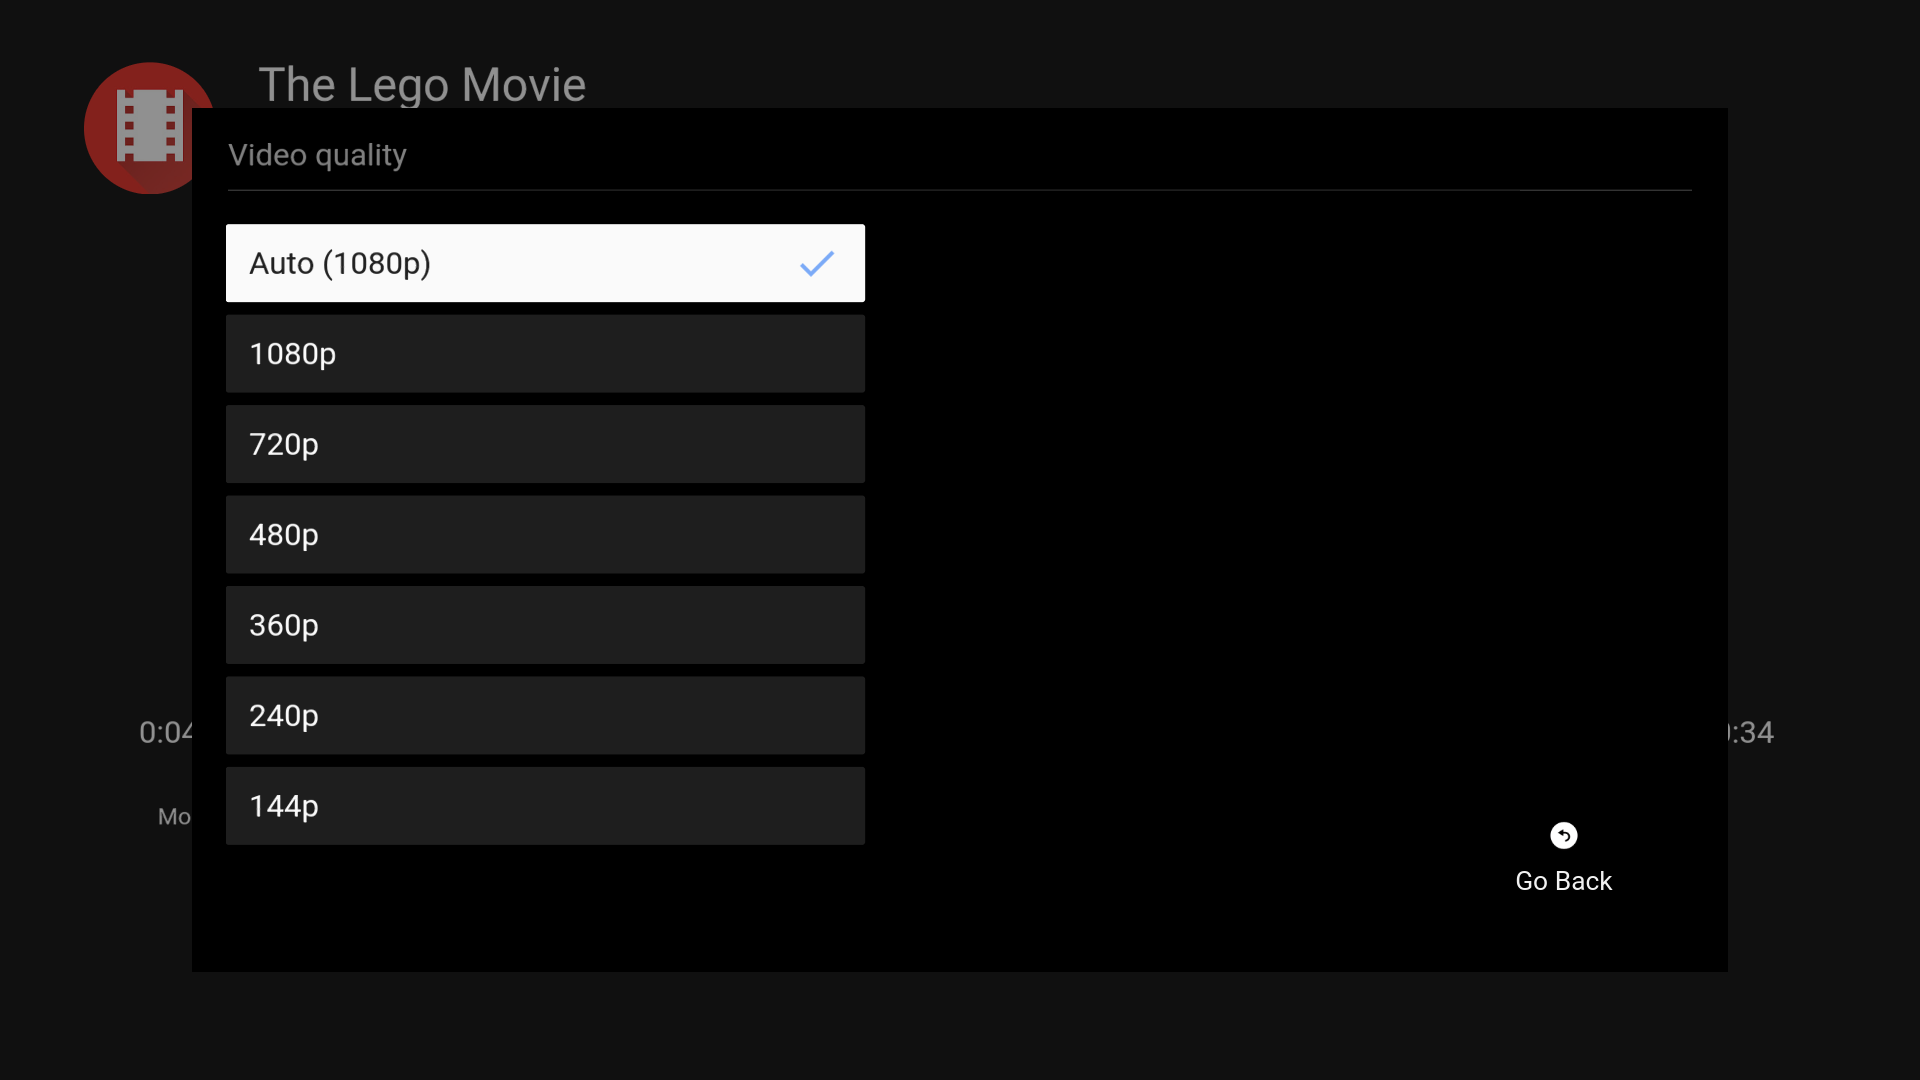 Play Movies purchases in HD are showing up as 4K in YouTube